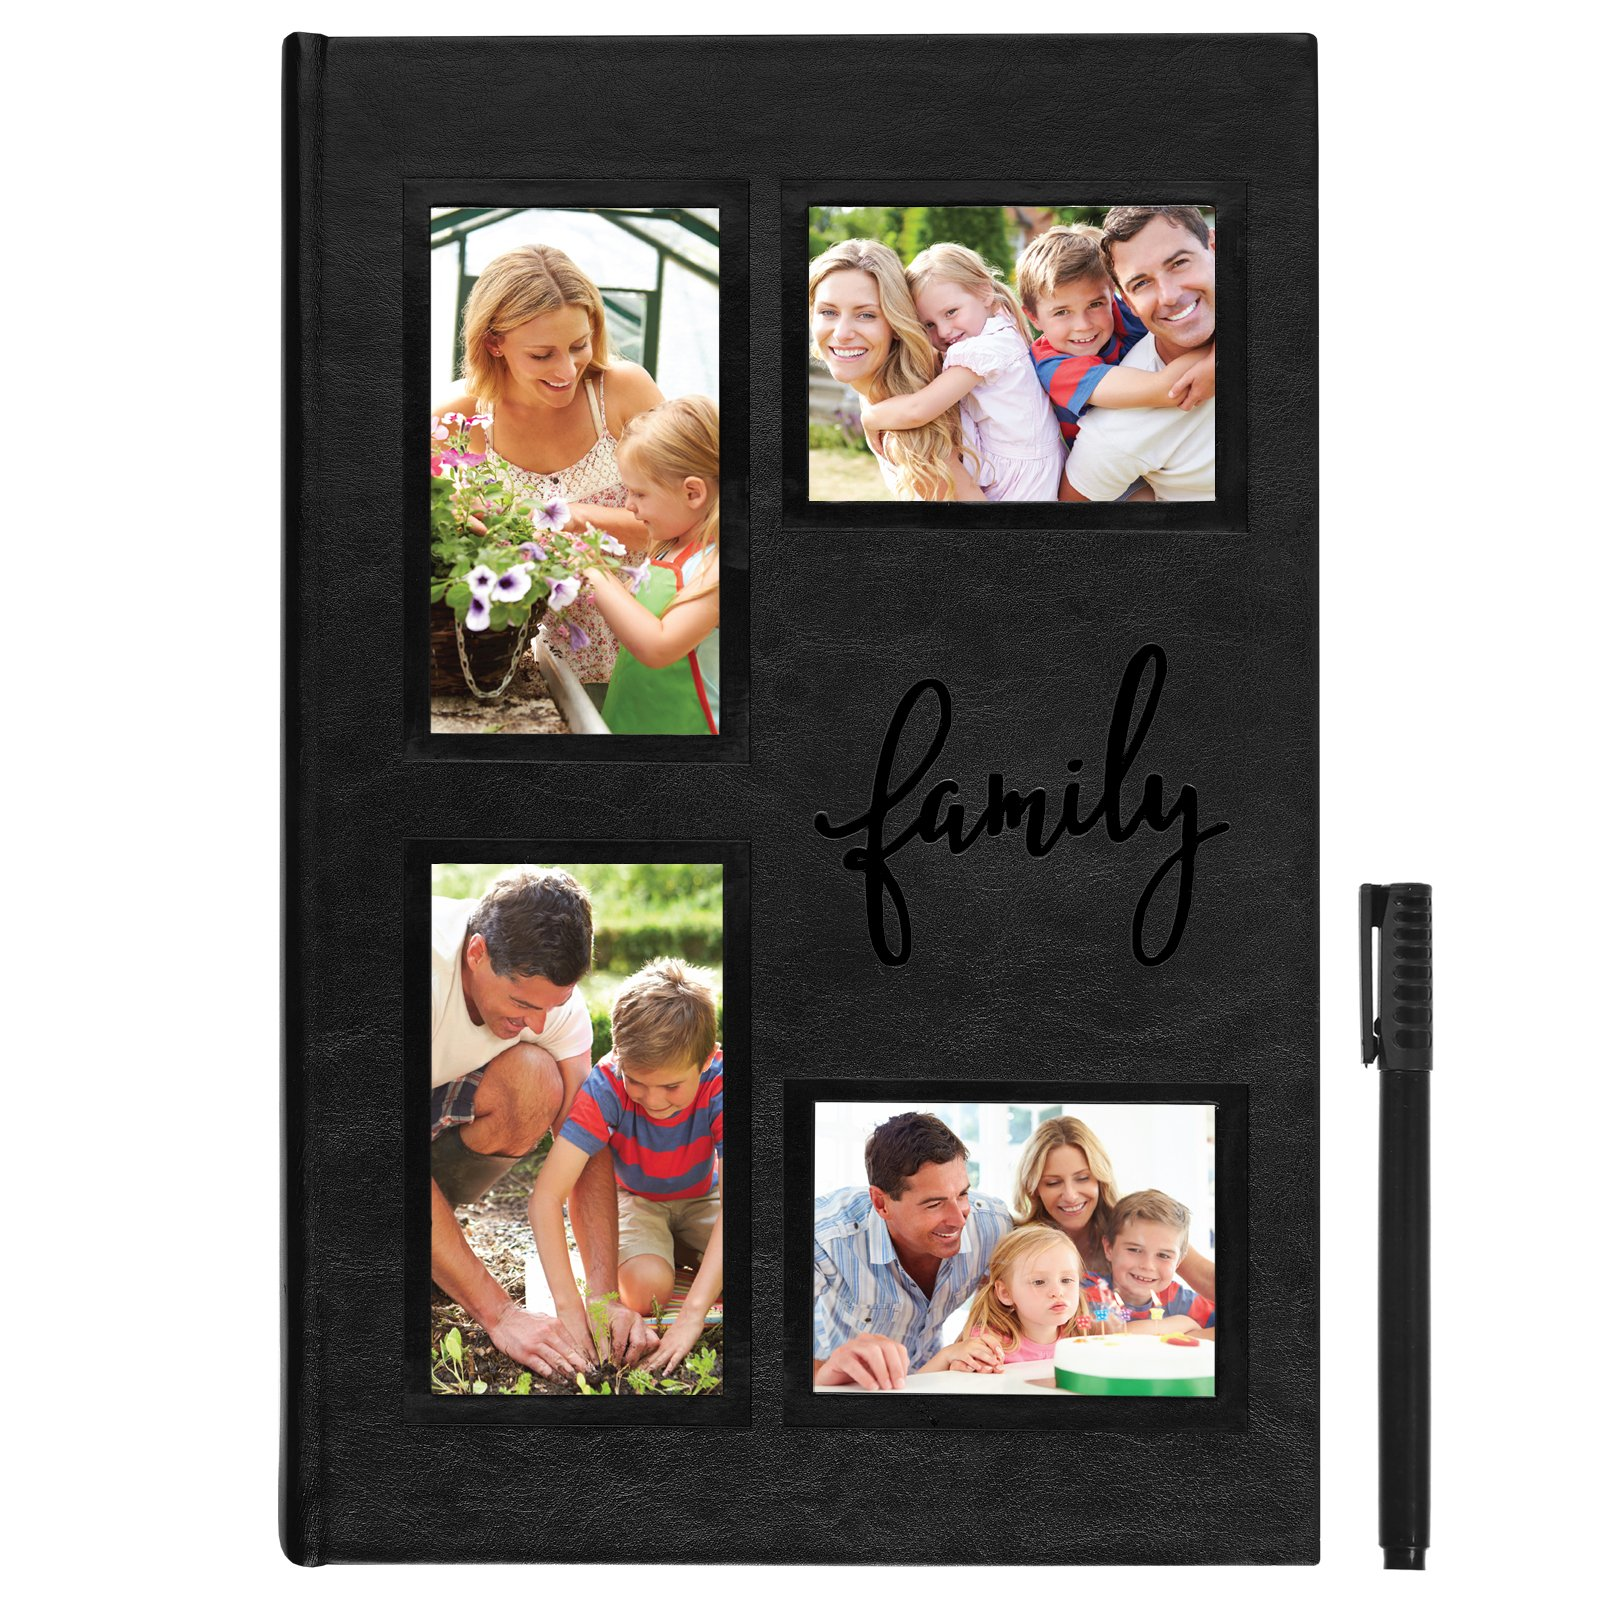 Americanflat Embroidered Photo Album - Holds 300 Photos - Fits Photos Size 4x6 inches - 4 Opening Cover - Ultra-Fine Tip Pen Included